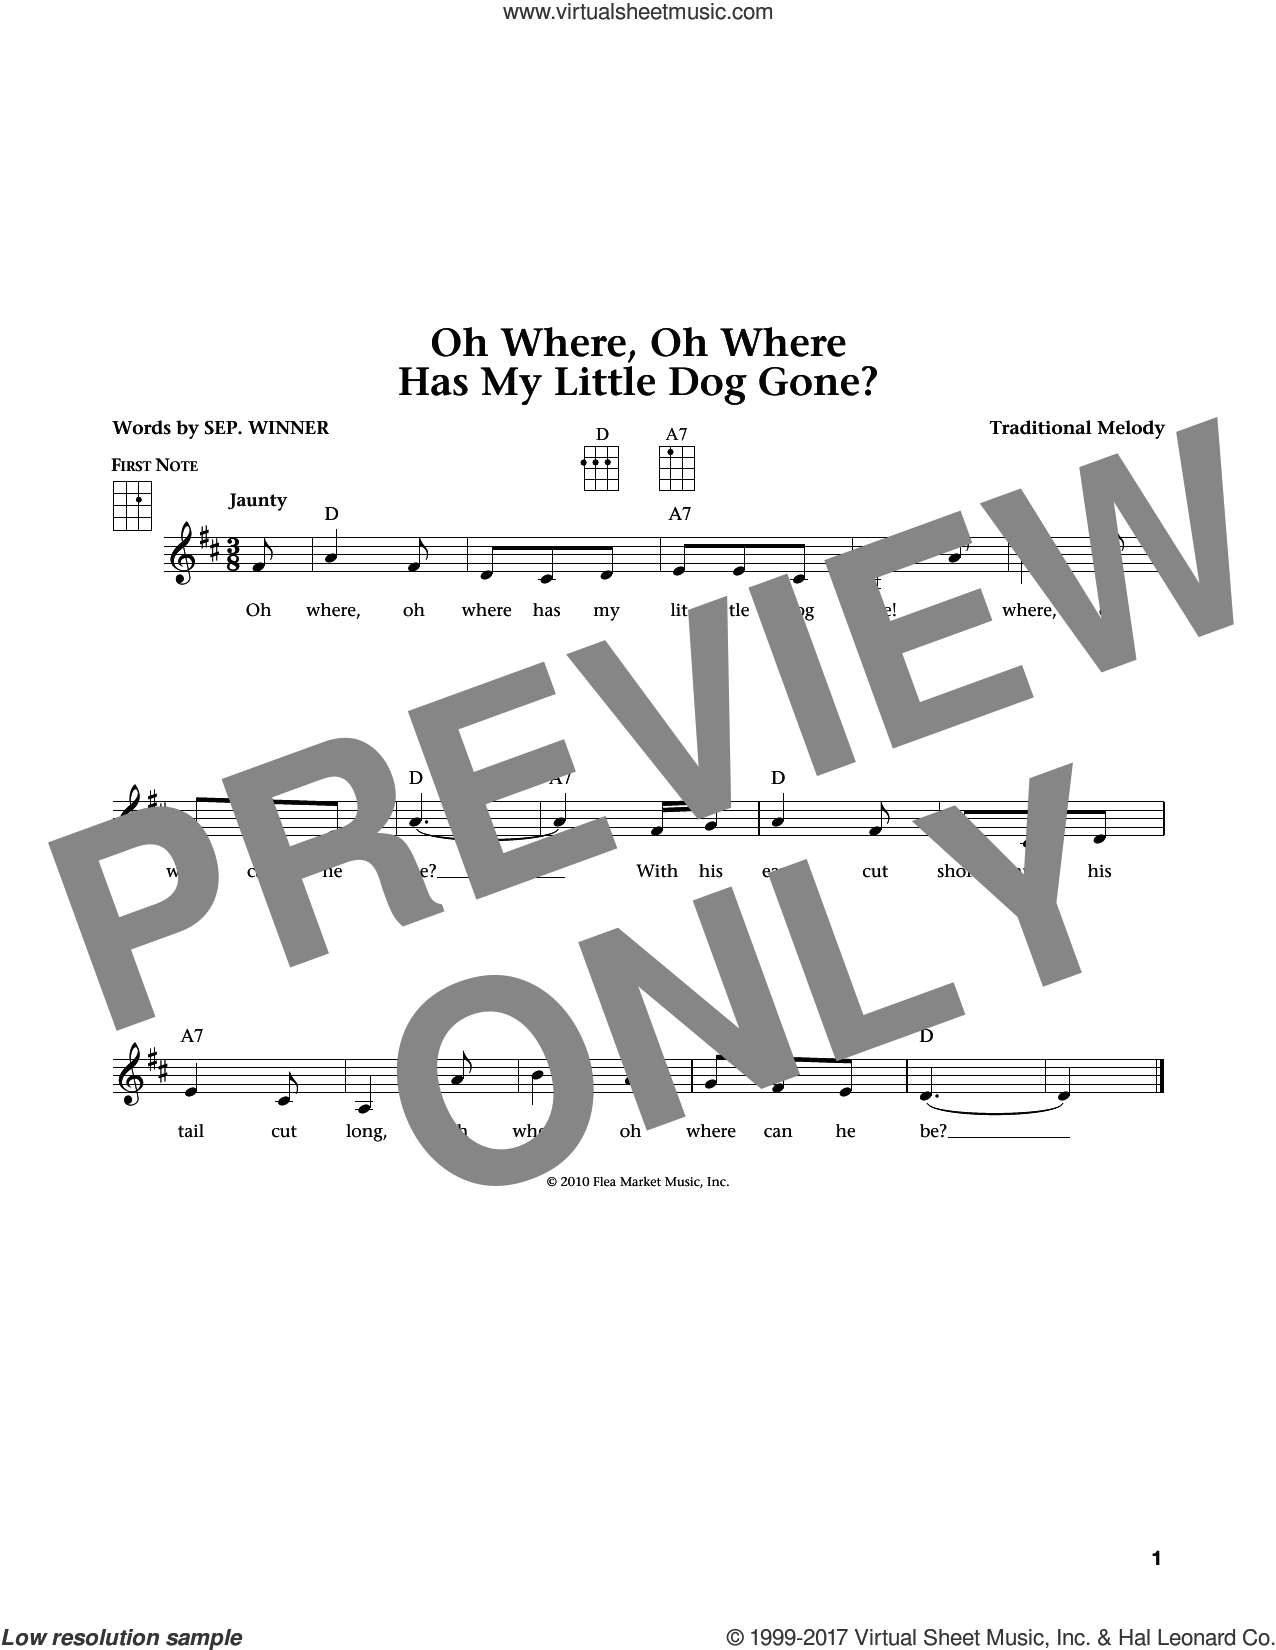 Oh Where, Oh Where Has My Little Dog Gone sheet music for ukulele , Jim Beloff and Liz Beloff, intermediate skill level